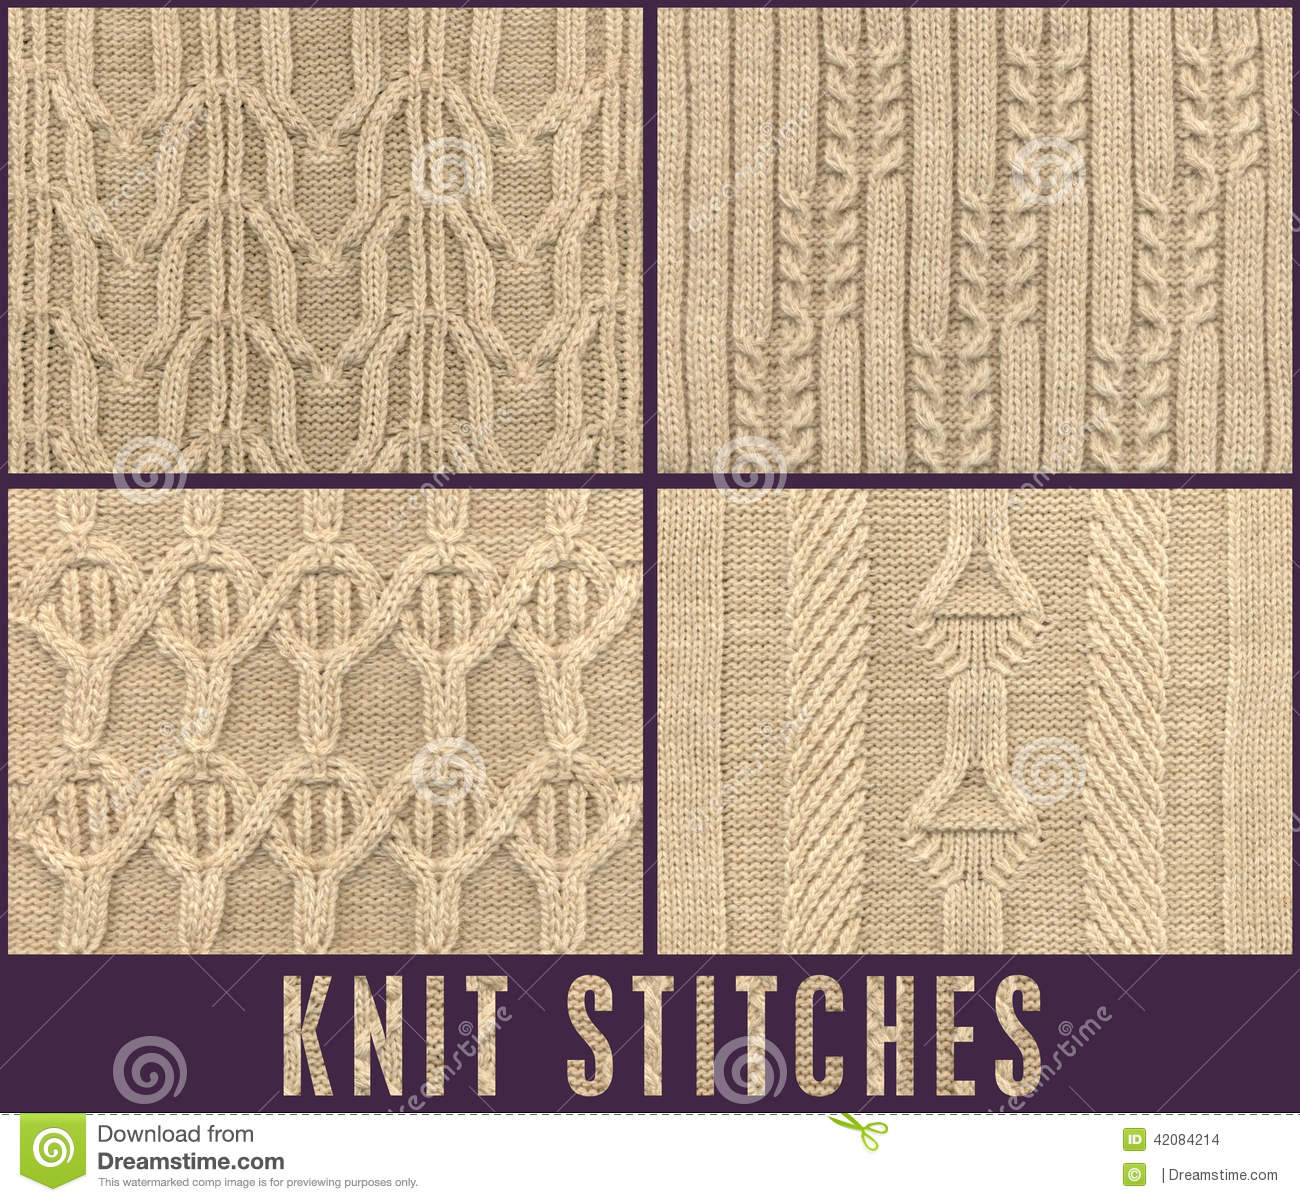 ROPE CABLE KNIT STICH FOR KNITWEAR Stock Photo - Image: 42084214